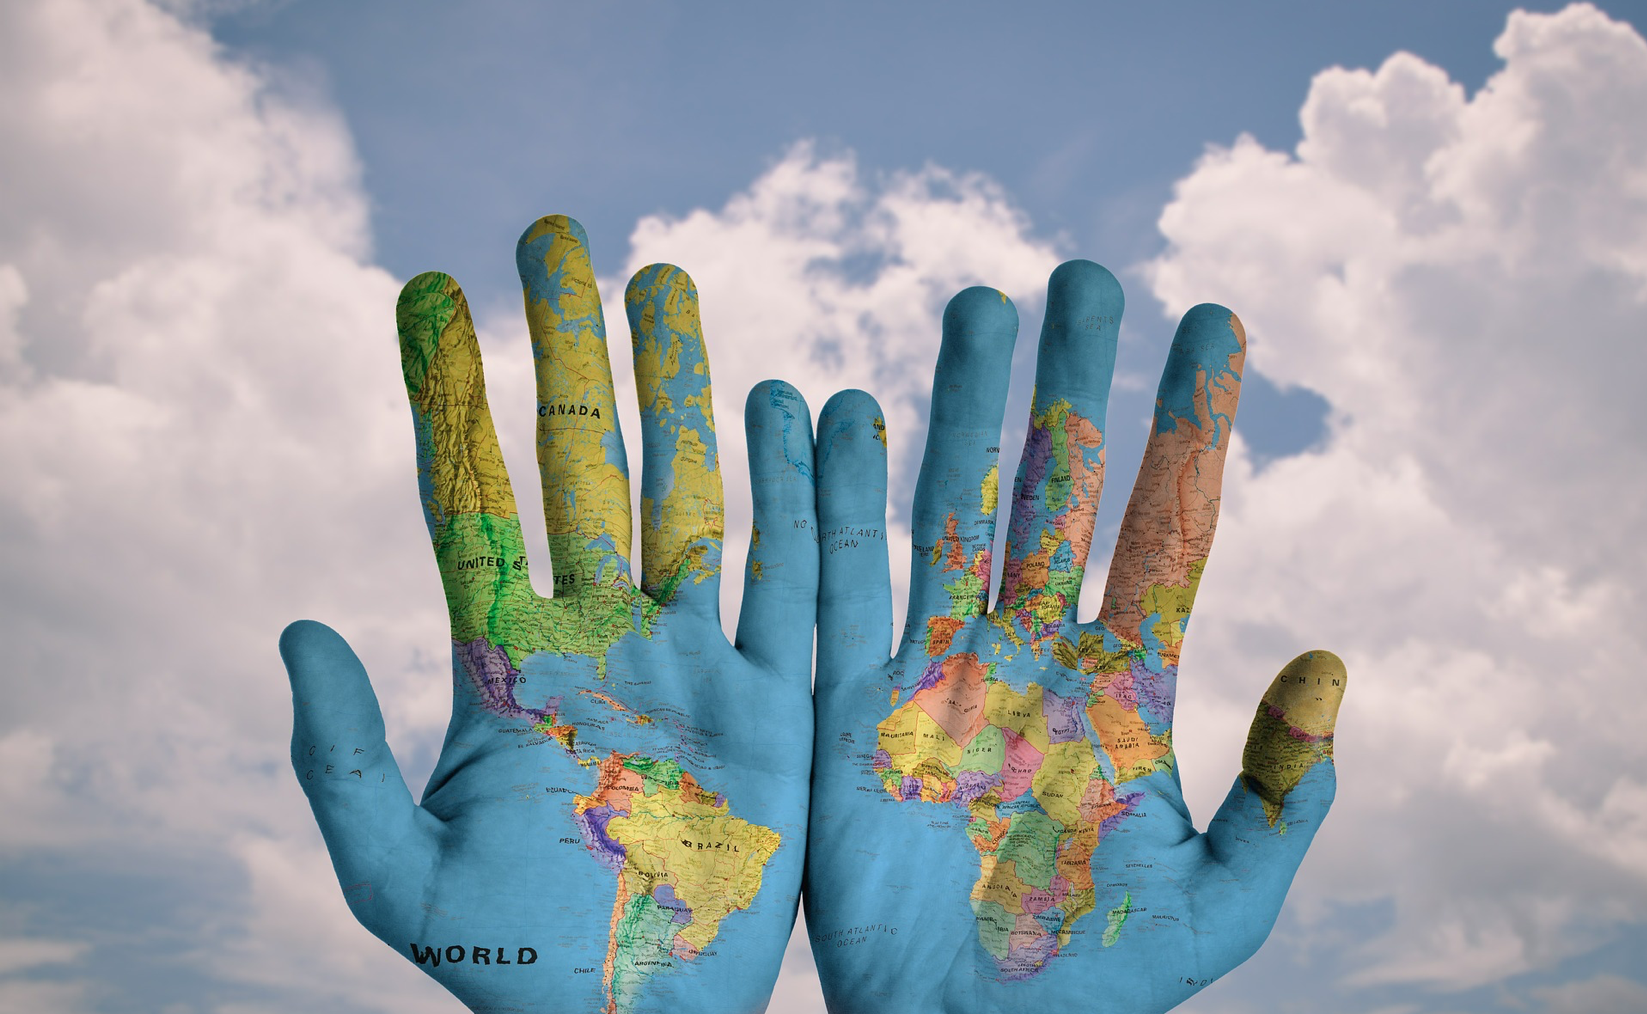 Our supply chains put the world in the palm of your hands.